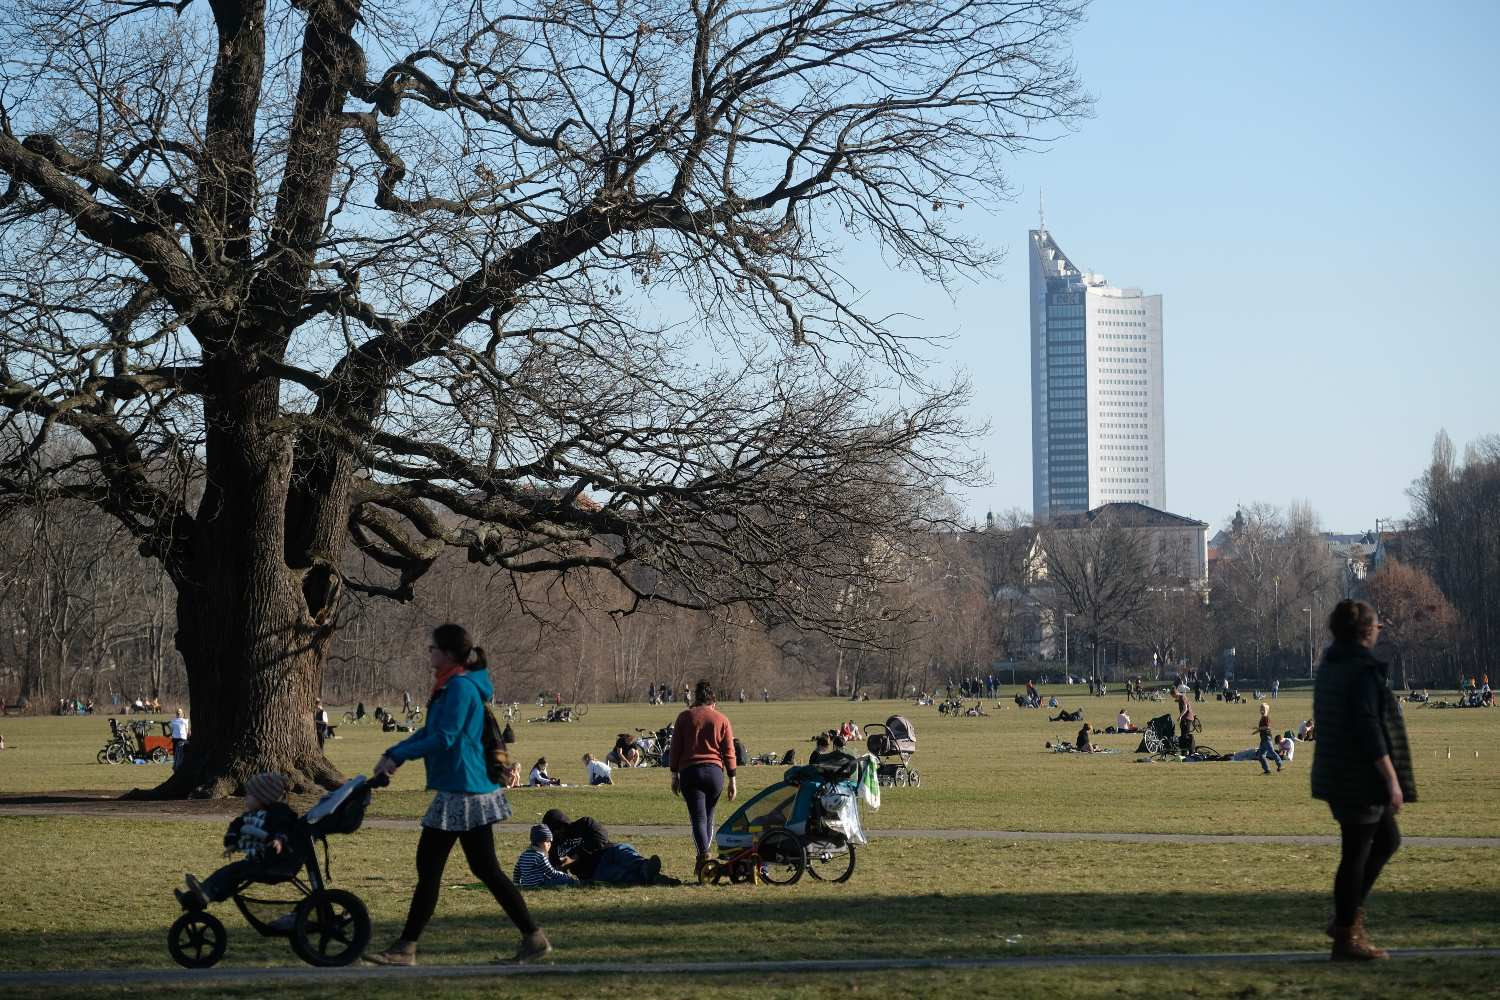 Germany sees temperature rise of record 41.9C in one week